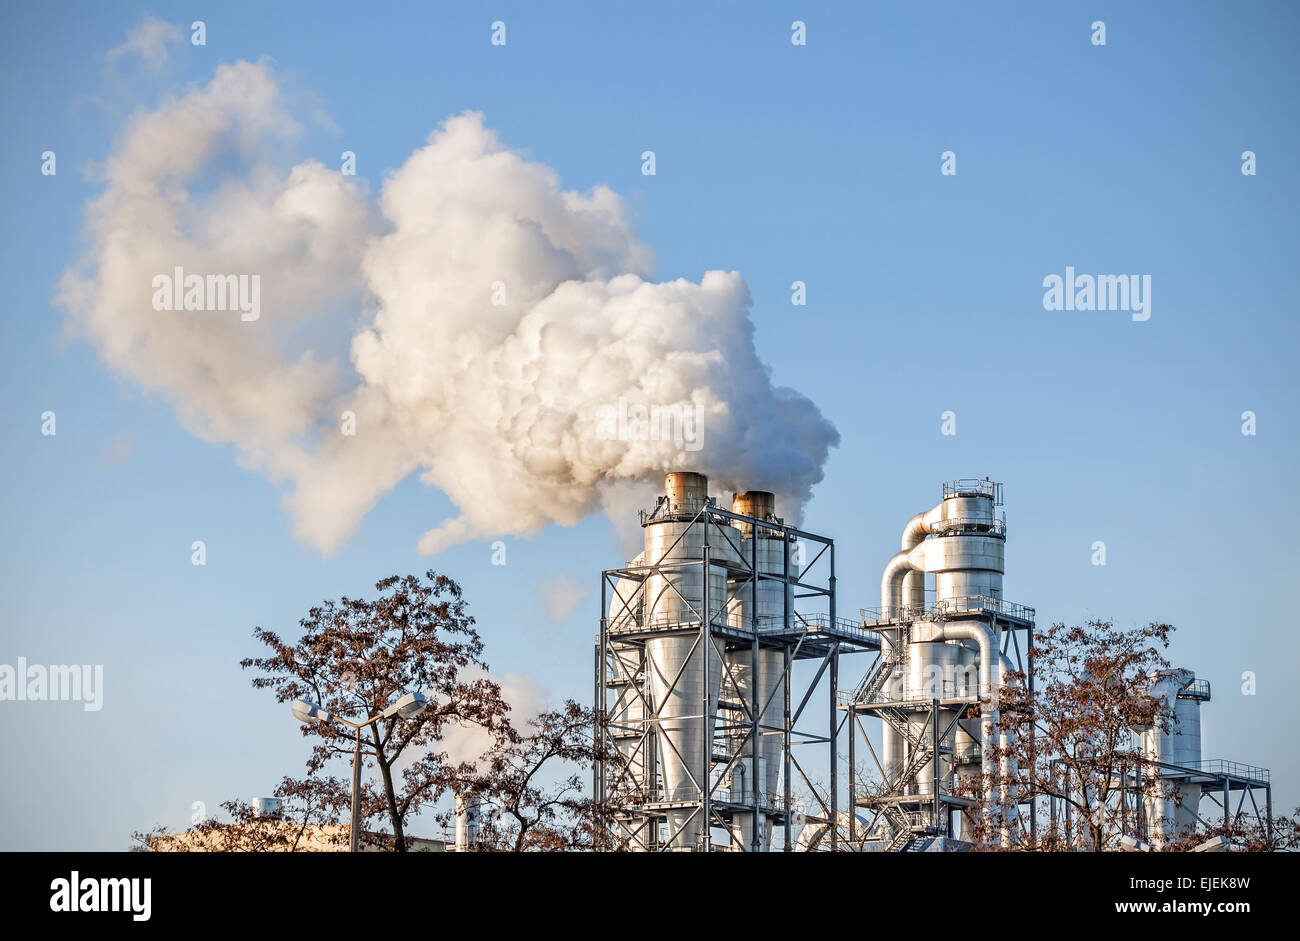 Smoking chimneys over blue sky, air pollution concept. - Stock Image